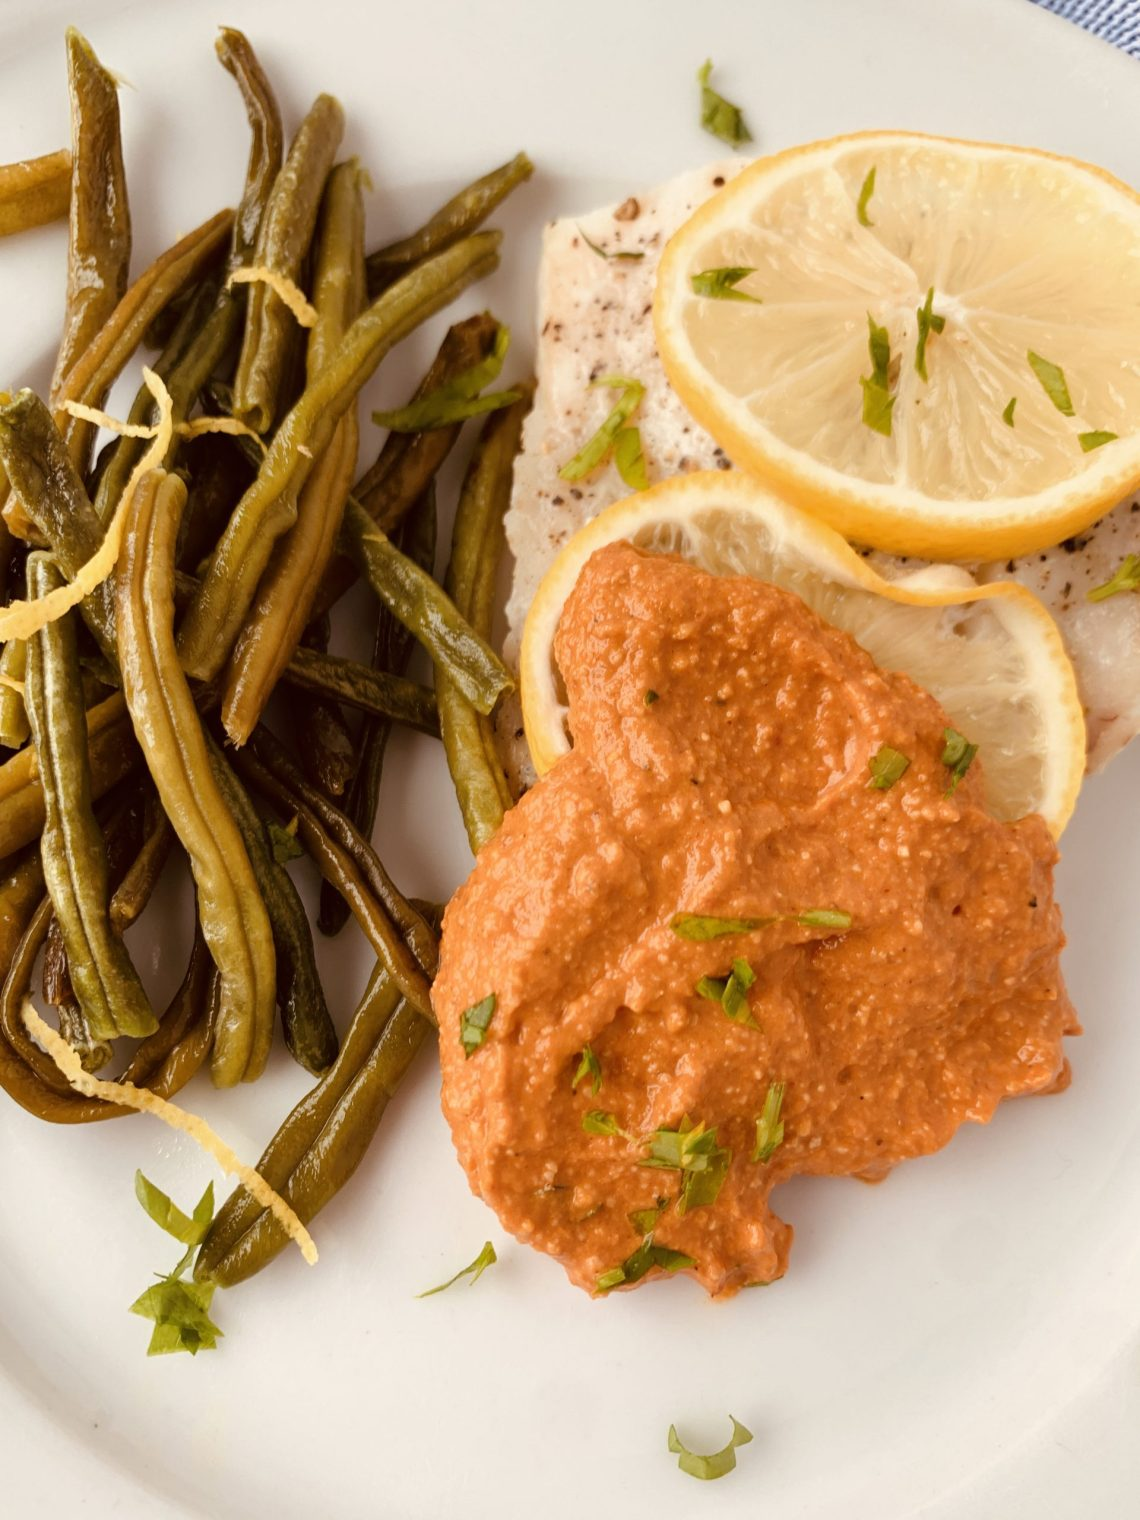 This shows how to serve romesco sauce with baked fish.